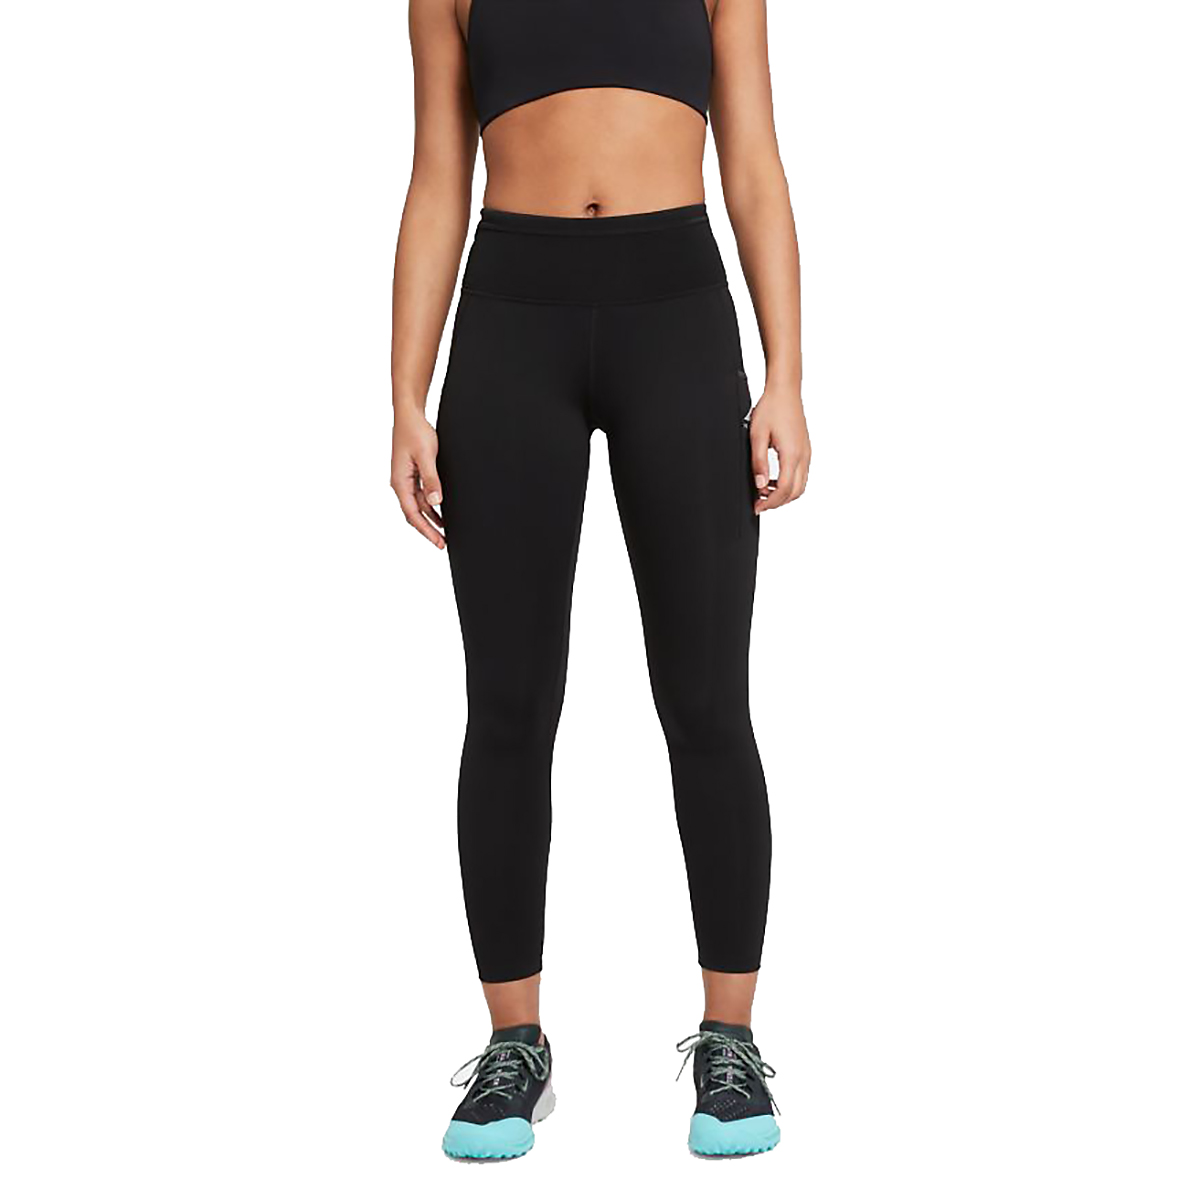 Women's Nike Epic Luxe Trail Running Tights - Color: Black/Dark Smoke Grey/Reflective Silver - Size: XS, Black/Dark Smoke Grey/Reflective Silver, large, image 1